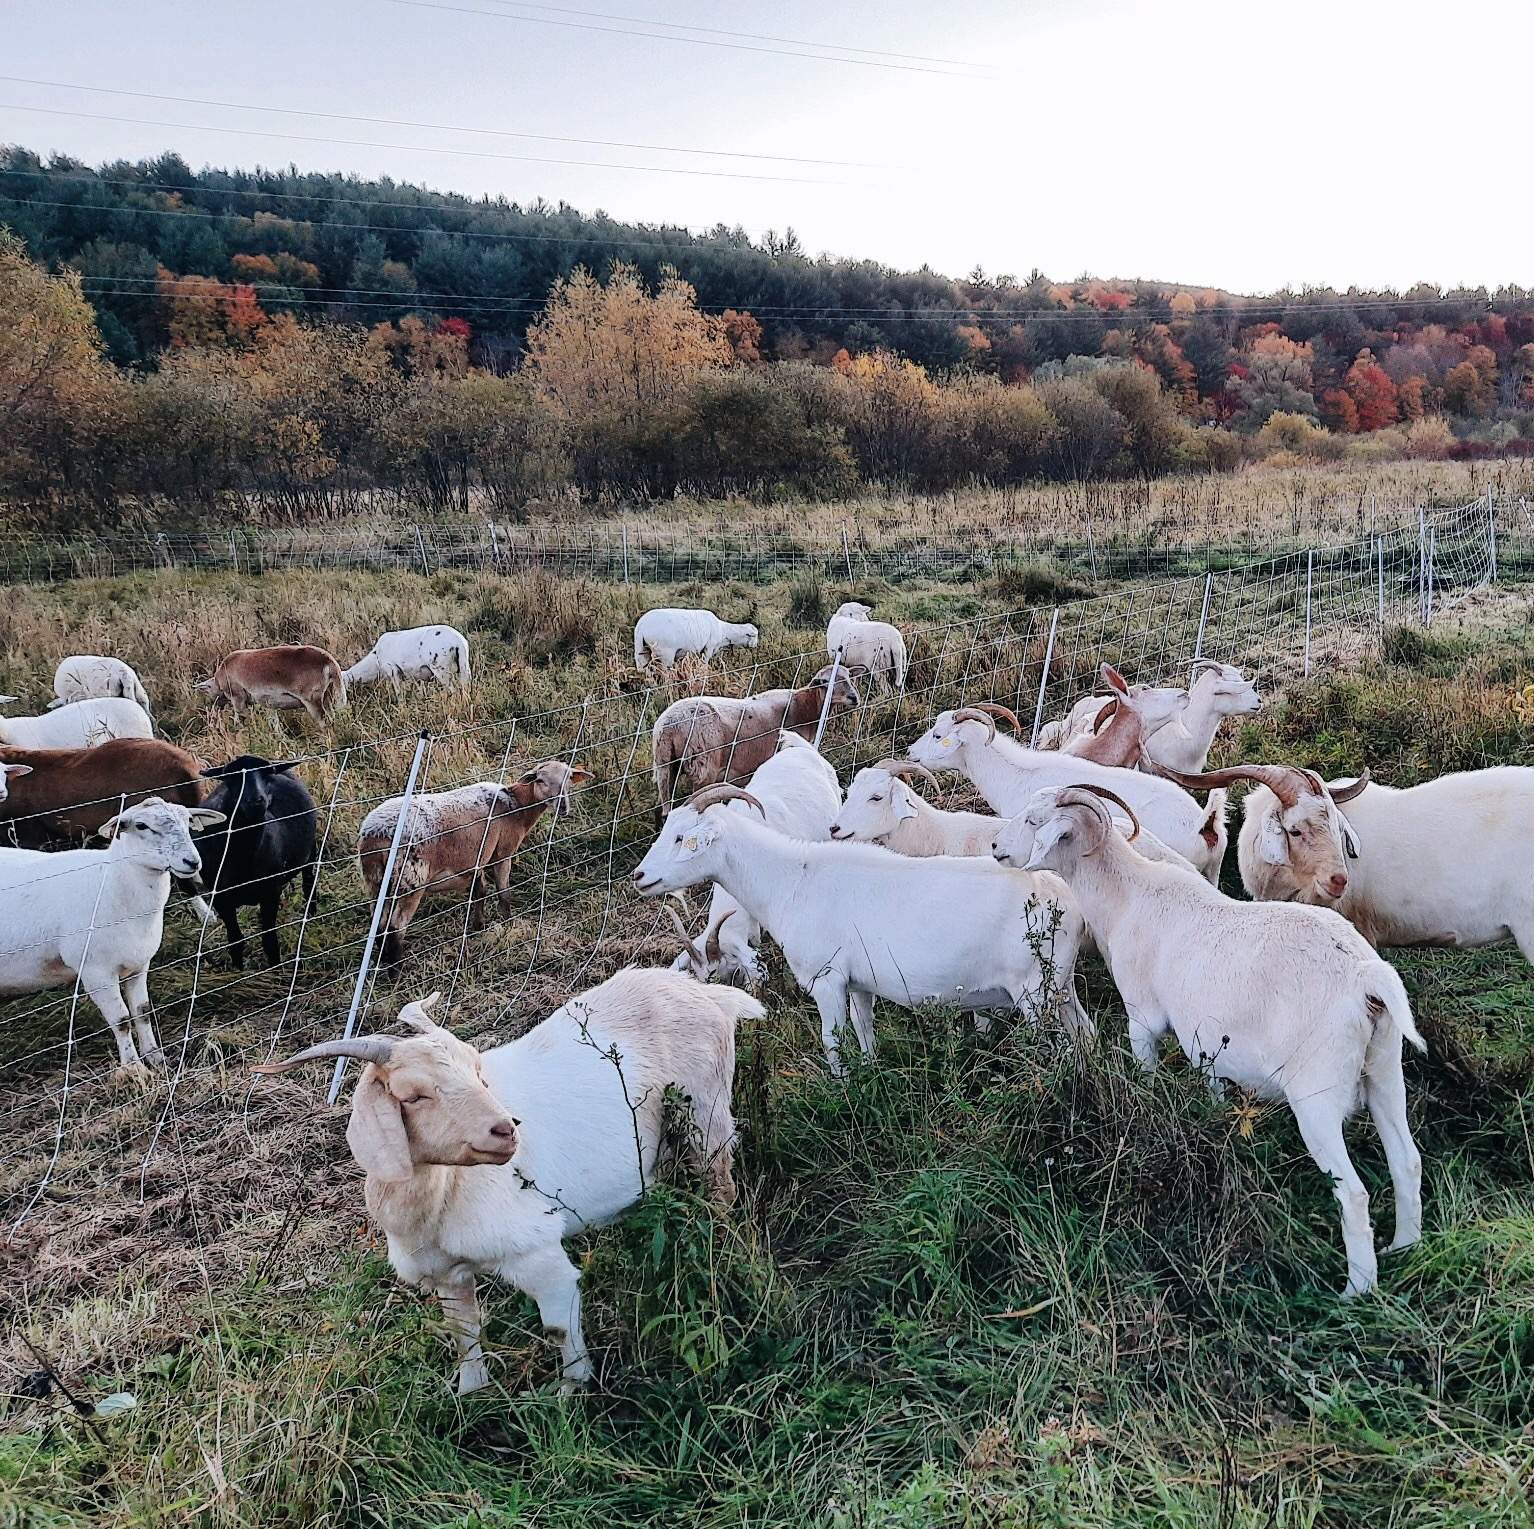 Sheep and goats in field